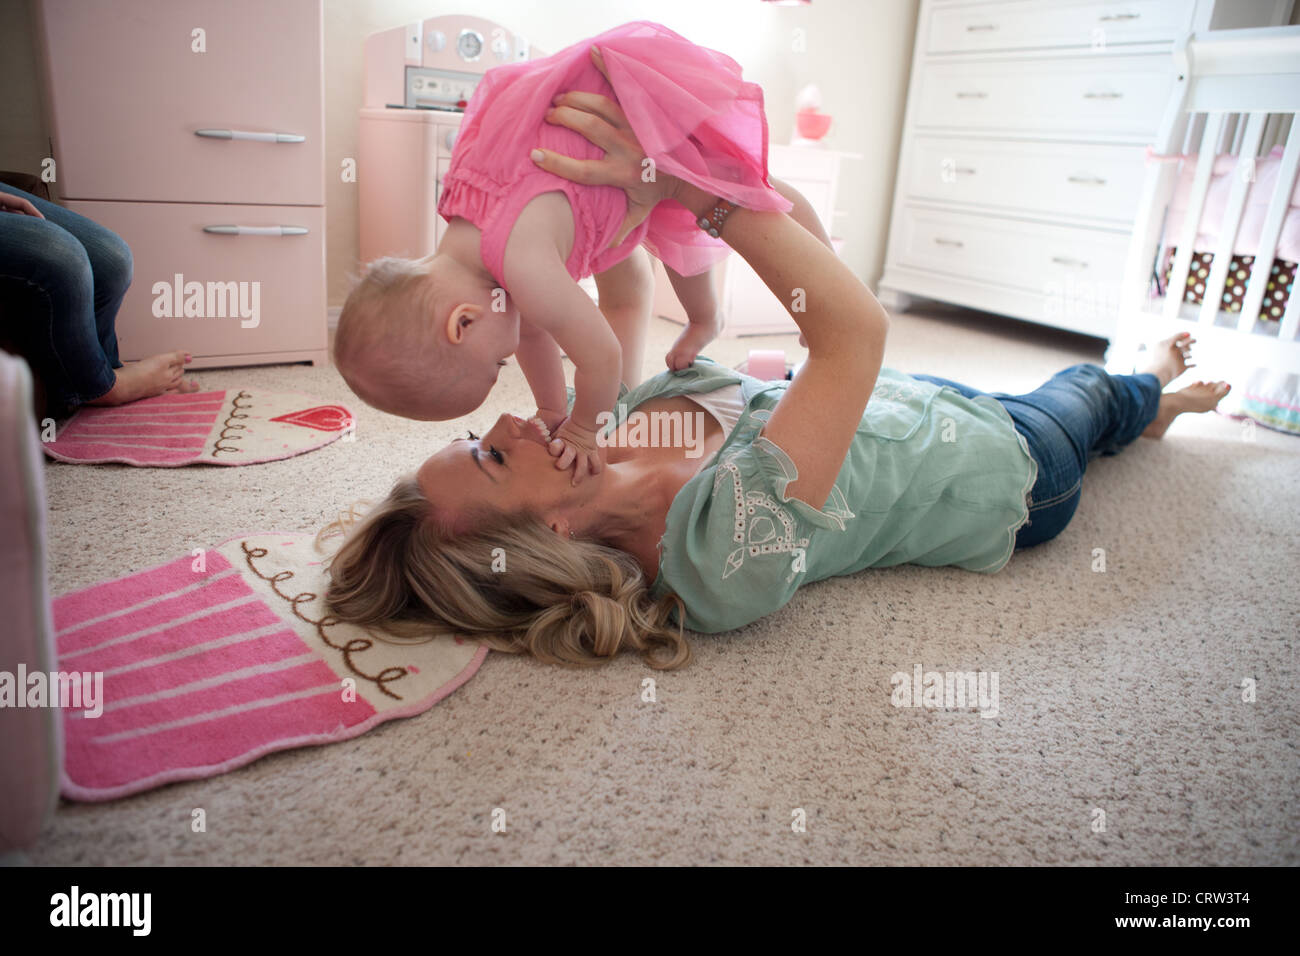 Mom holding her eleven month old girl up and playing in bedroom. Stock Photo